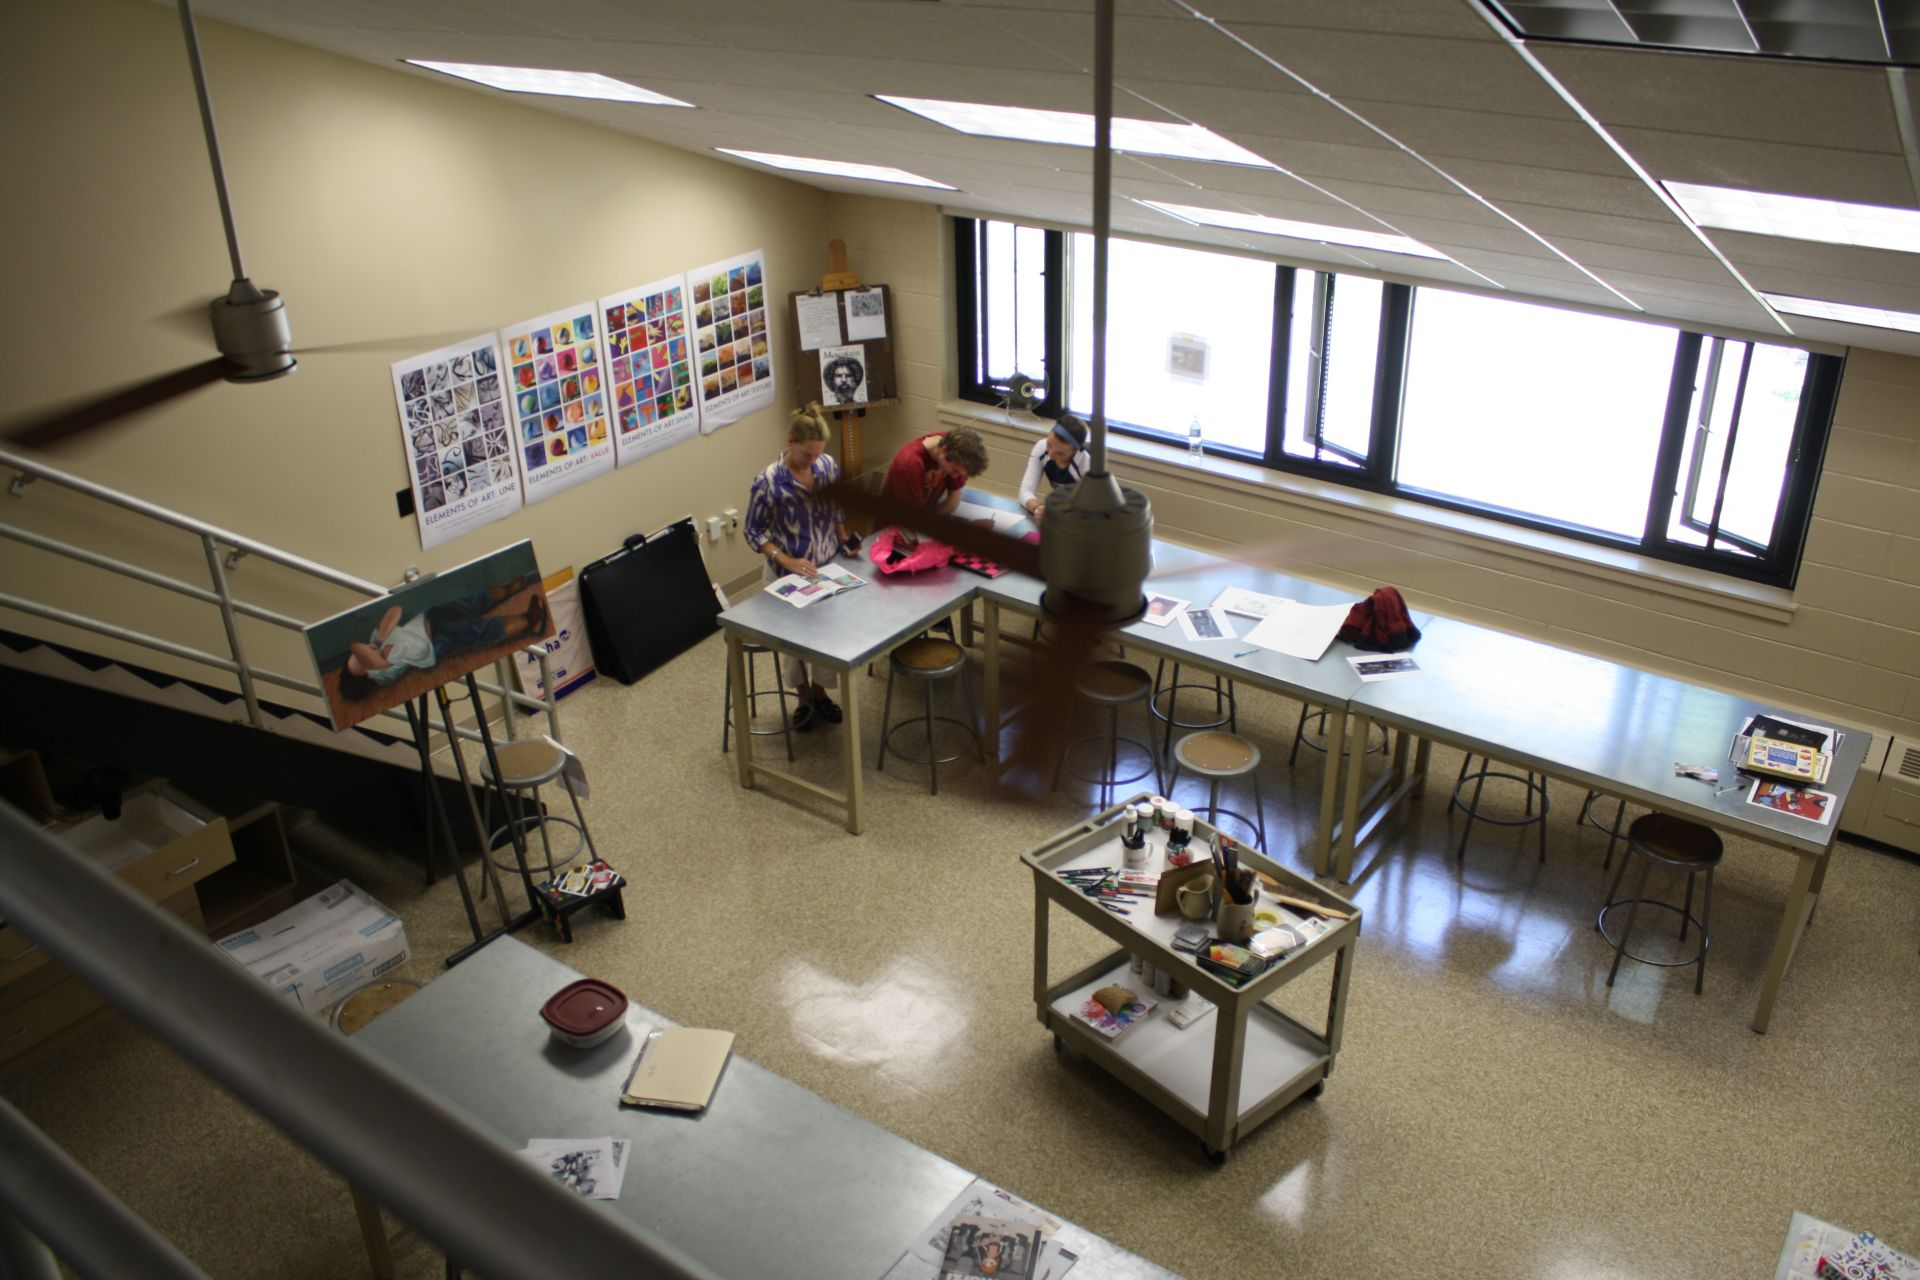 One of three art studios on campus, visual art classes meet here for students in Grades 8-12.